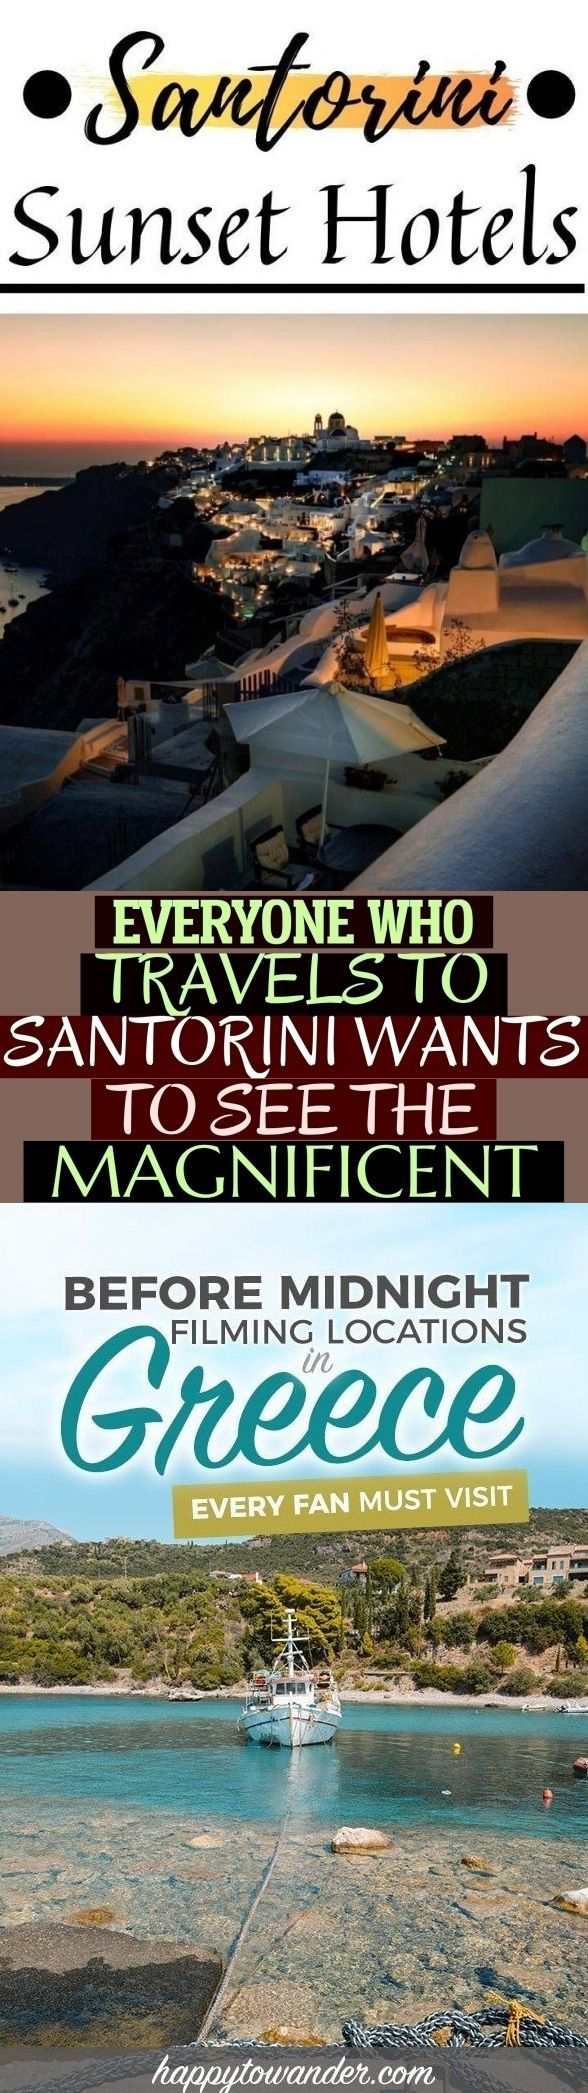 Everyone Who Travels To Santorini Wants To See The Magnificent * #santorini #sunset #hotels #santorinisunset #santorinihotels #santorinisunsethotels #hotelsinsantorini #wheretostay #hotels #bucketlist #greece #santorinigreece jeder, der nach santorini reist, möchte das prächtige sehen #travelMap #Californiatravel Everyone Who Travels To Santorini Wants To See The Magnificent * travel Japan | travel Ilustration | travel Fotography #travel fotography